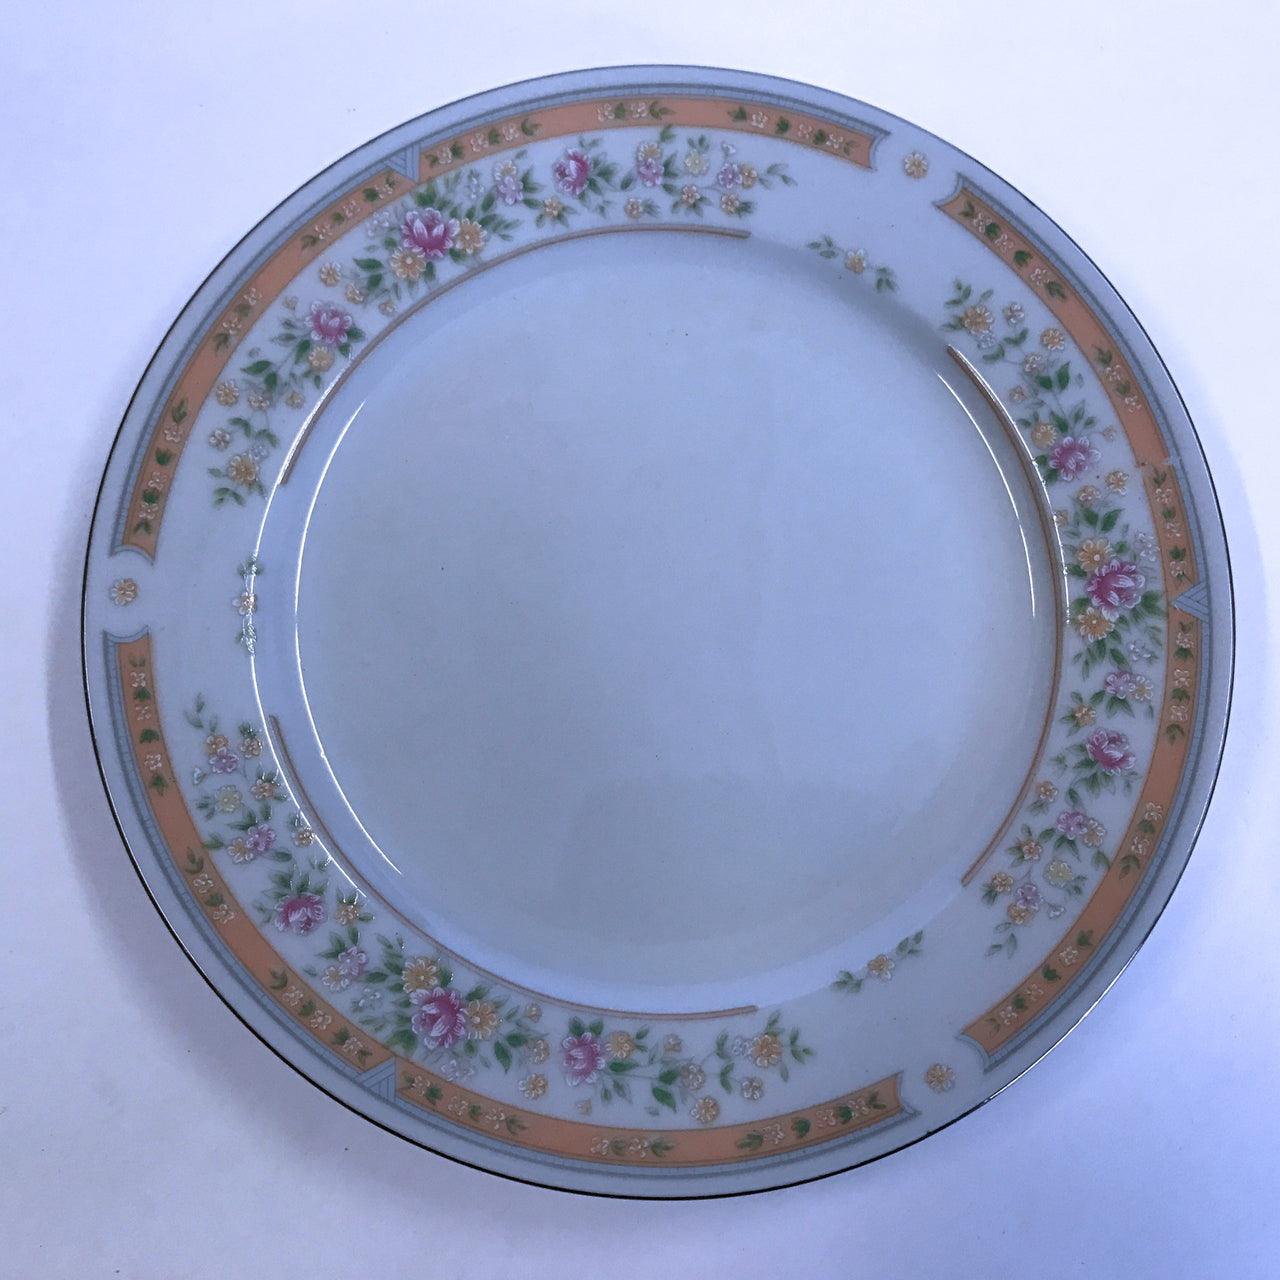 Vintage Kentfield and Sawyer Bread Plate Hand Decorated Flowers Silver Accent